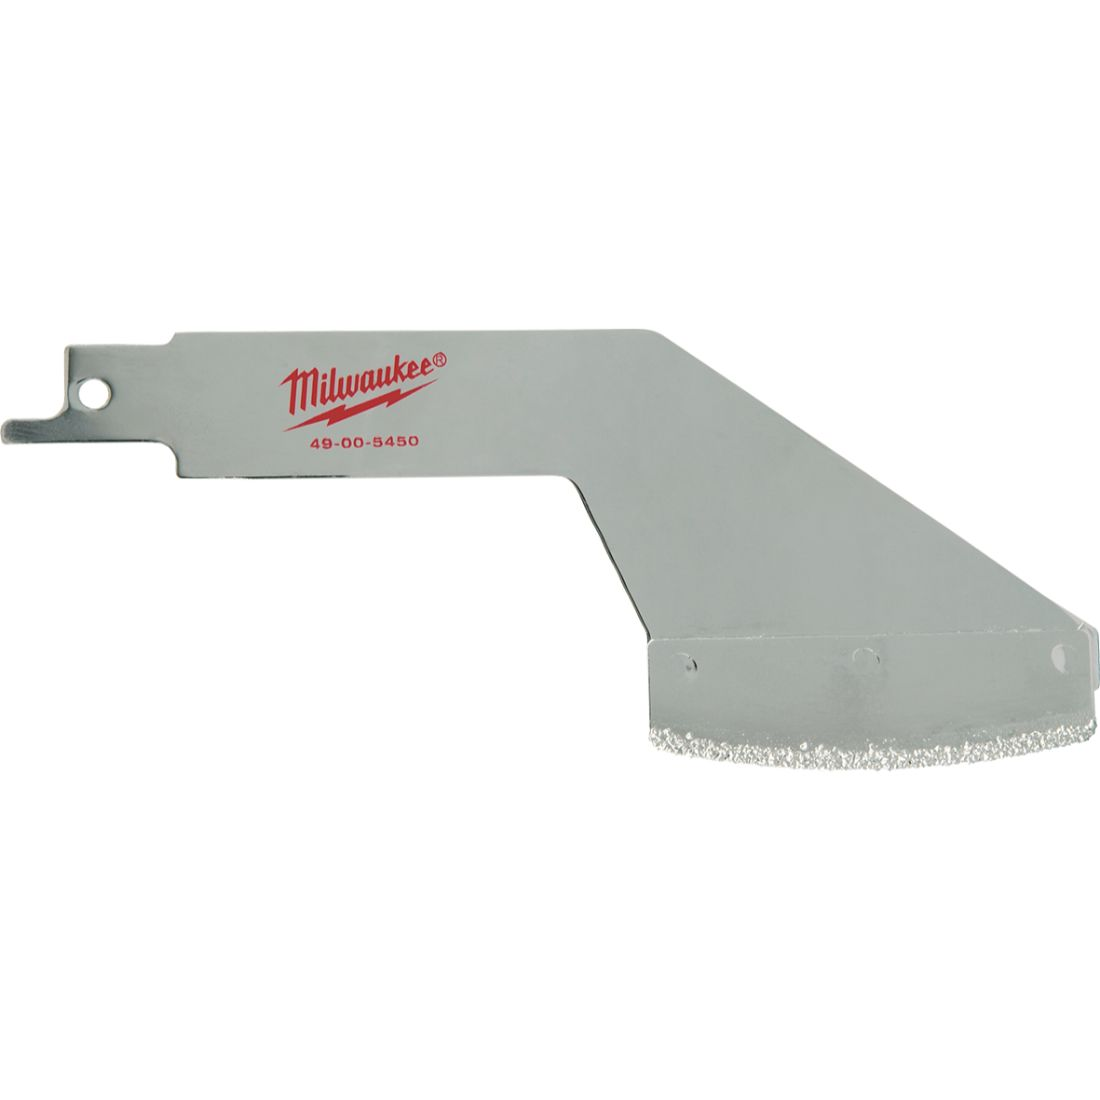 Grout Remover Blade